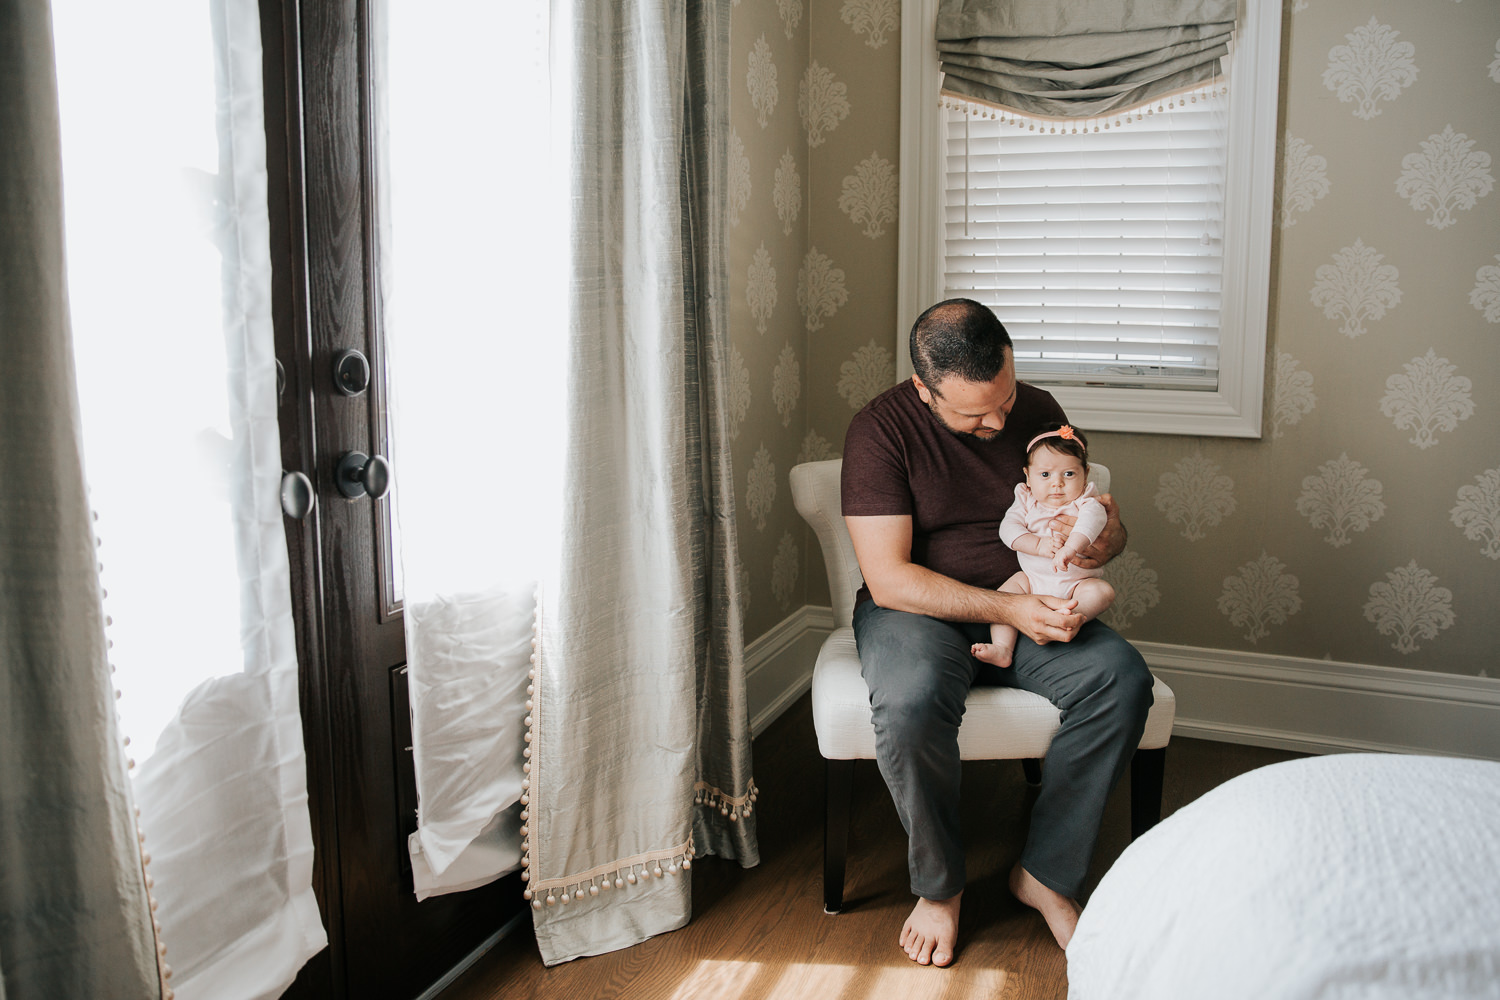 new dad in jeans and t shirt sitting in chair holding and smiling at 2 month old baby girl in pink onesie who is sitting on his knee looking at the camera -  Newmarket Lifestyle Photos